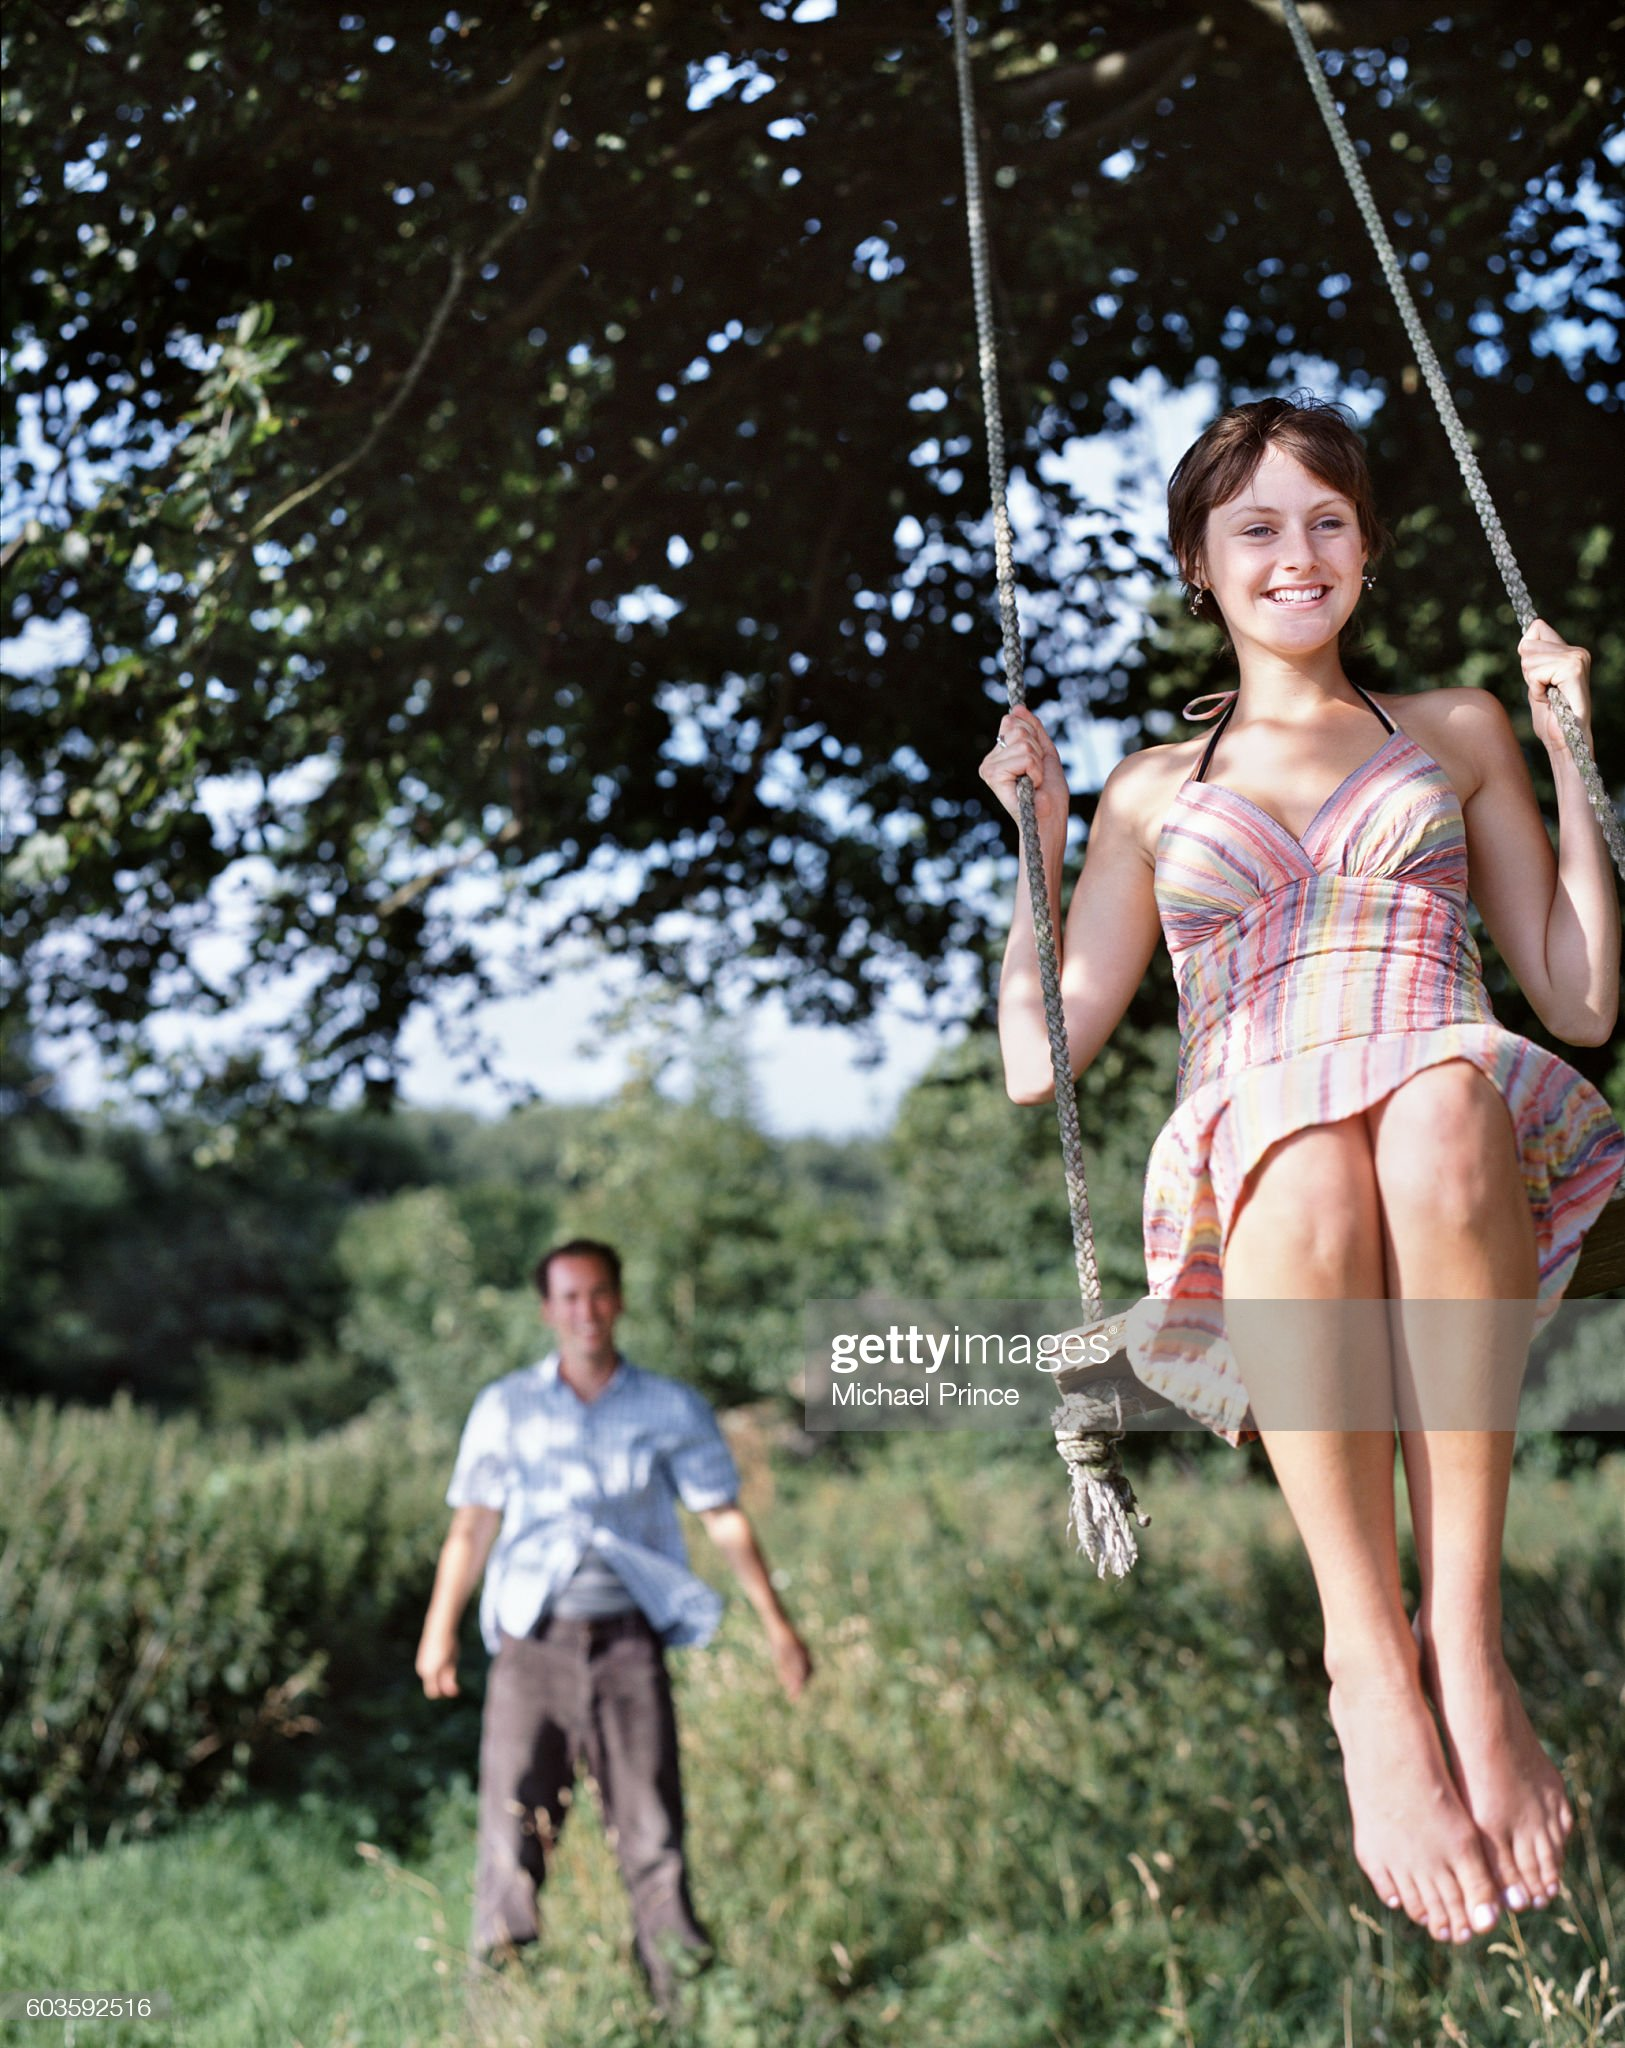 https://media.gettyimages.com/photos/young-woman-on-swing-with-man-watching-picture-id603592516?s=2048x2048